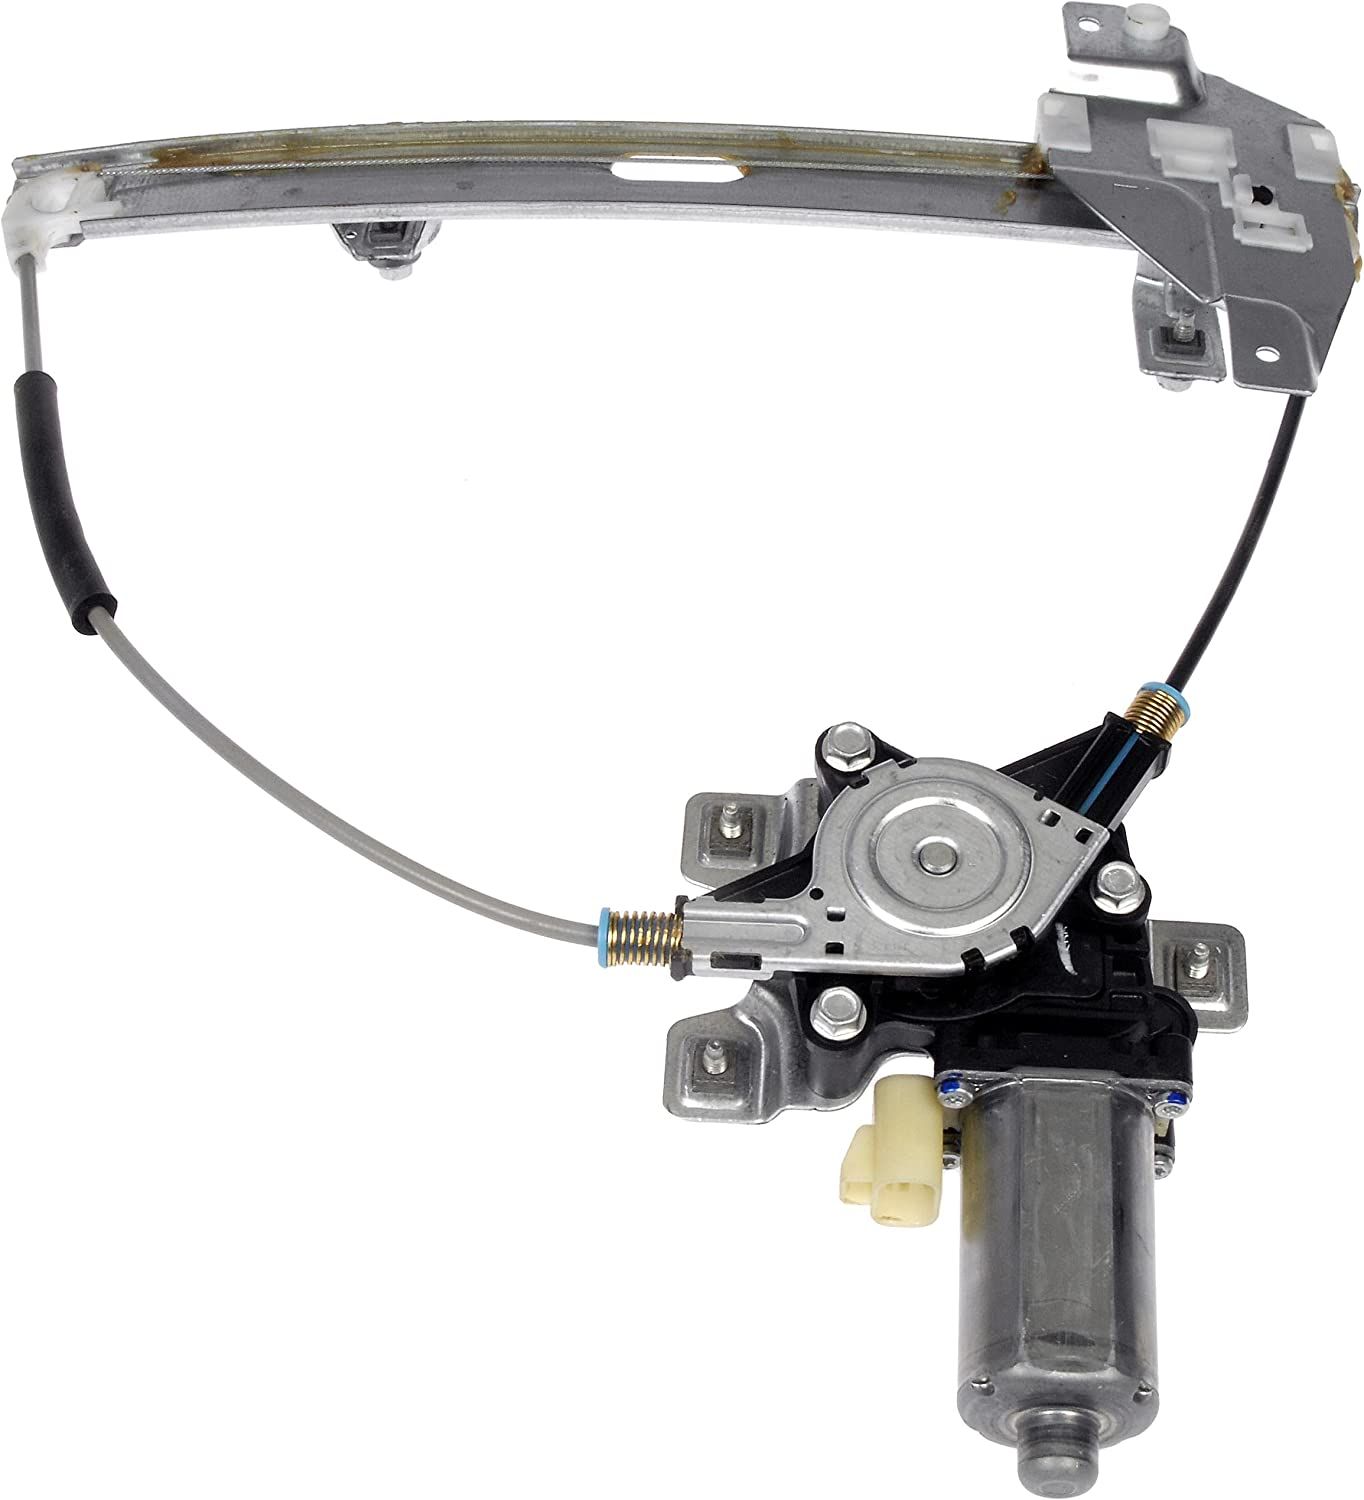 For Chevy Equinox 05-08 Dorman 742-562 Solutions Rear Driver Side Window Motor